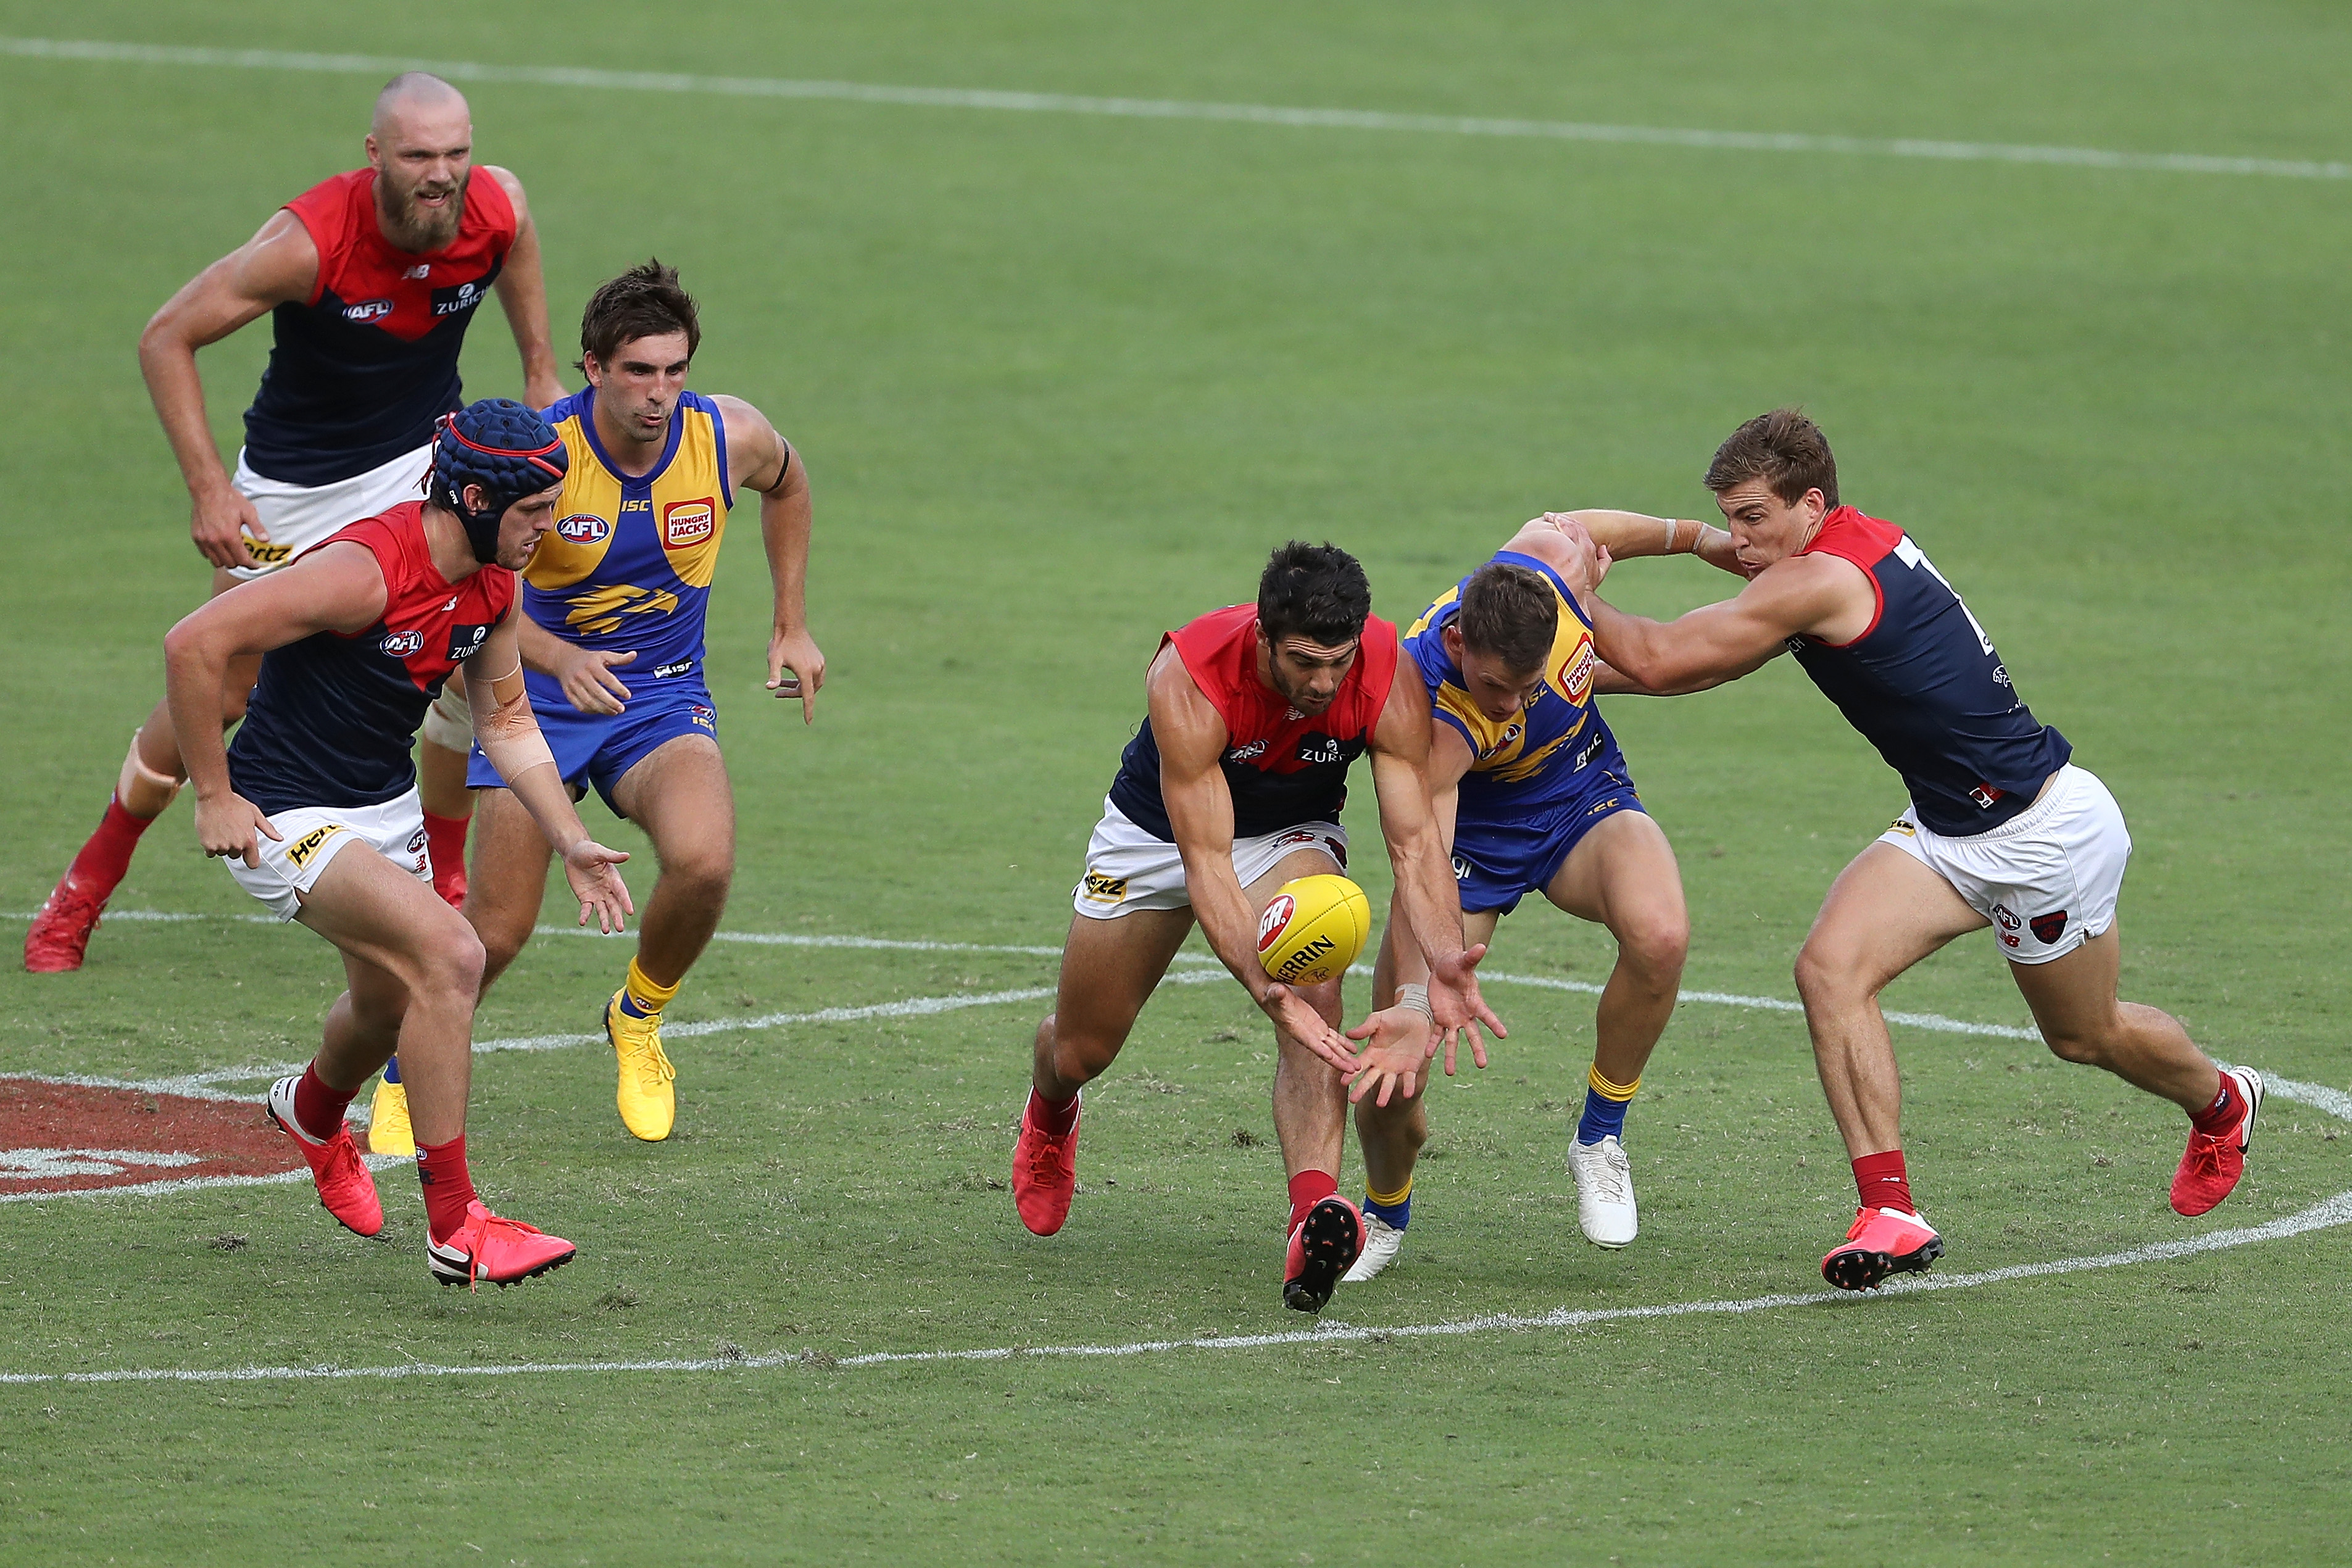 Christian Petracca of the Demons and Jack Redden of the Eagles contest for the ball during the round 1 AFL match between the West Coast Eagles and the Melbourne Demons at Optus Stadium on March 22, 2020 in Perth, Australia.